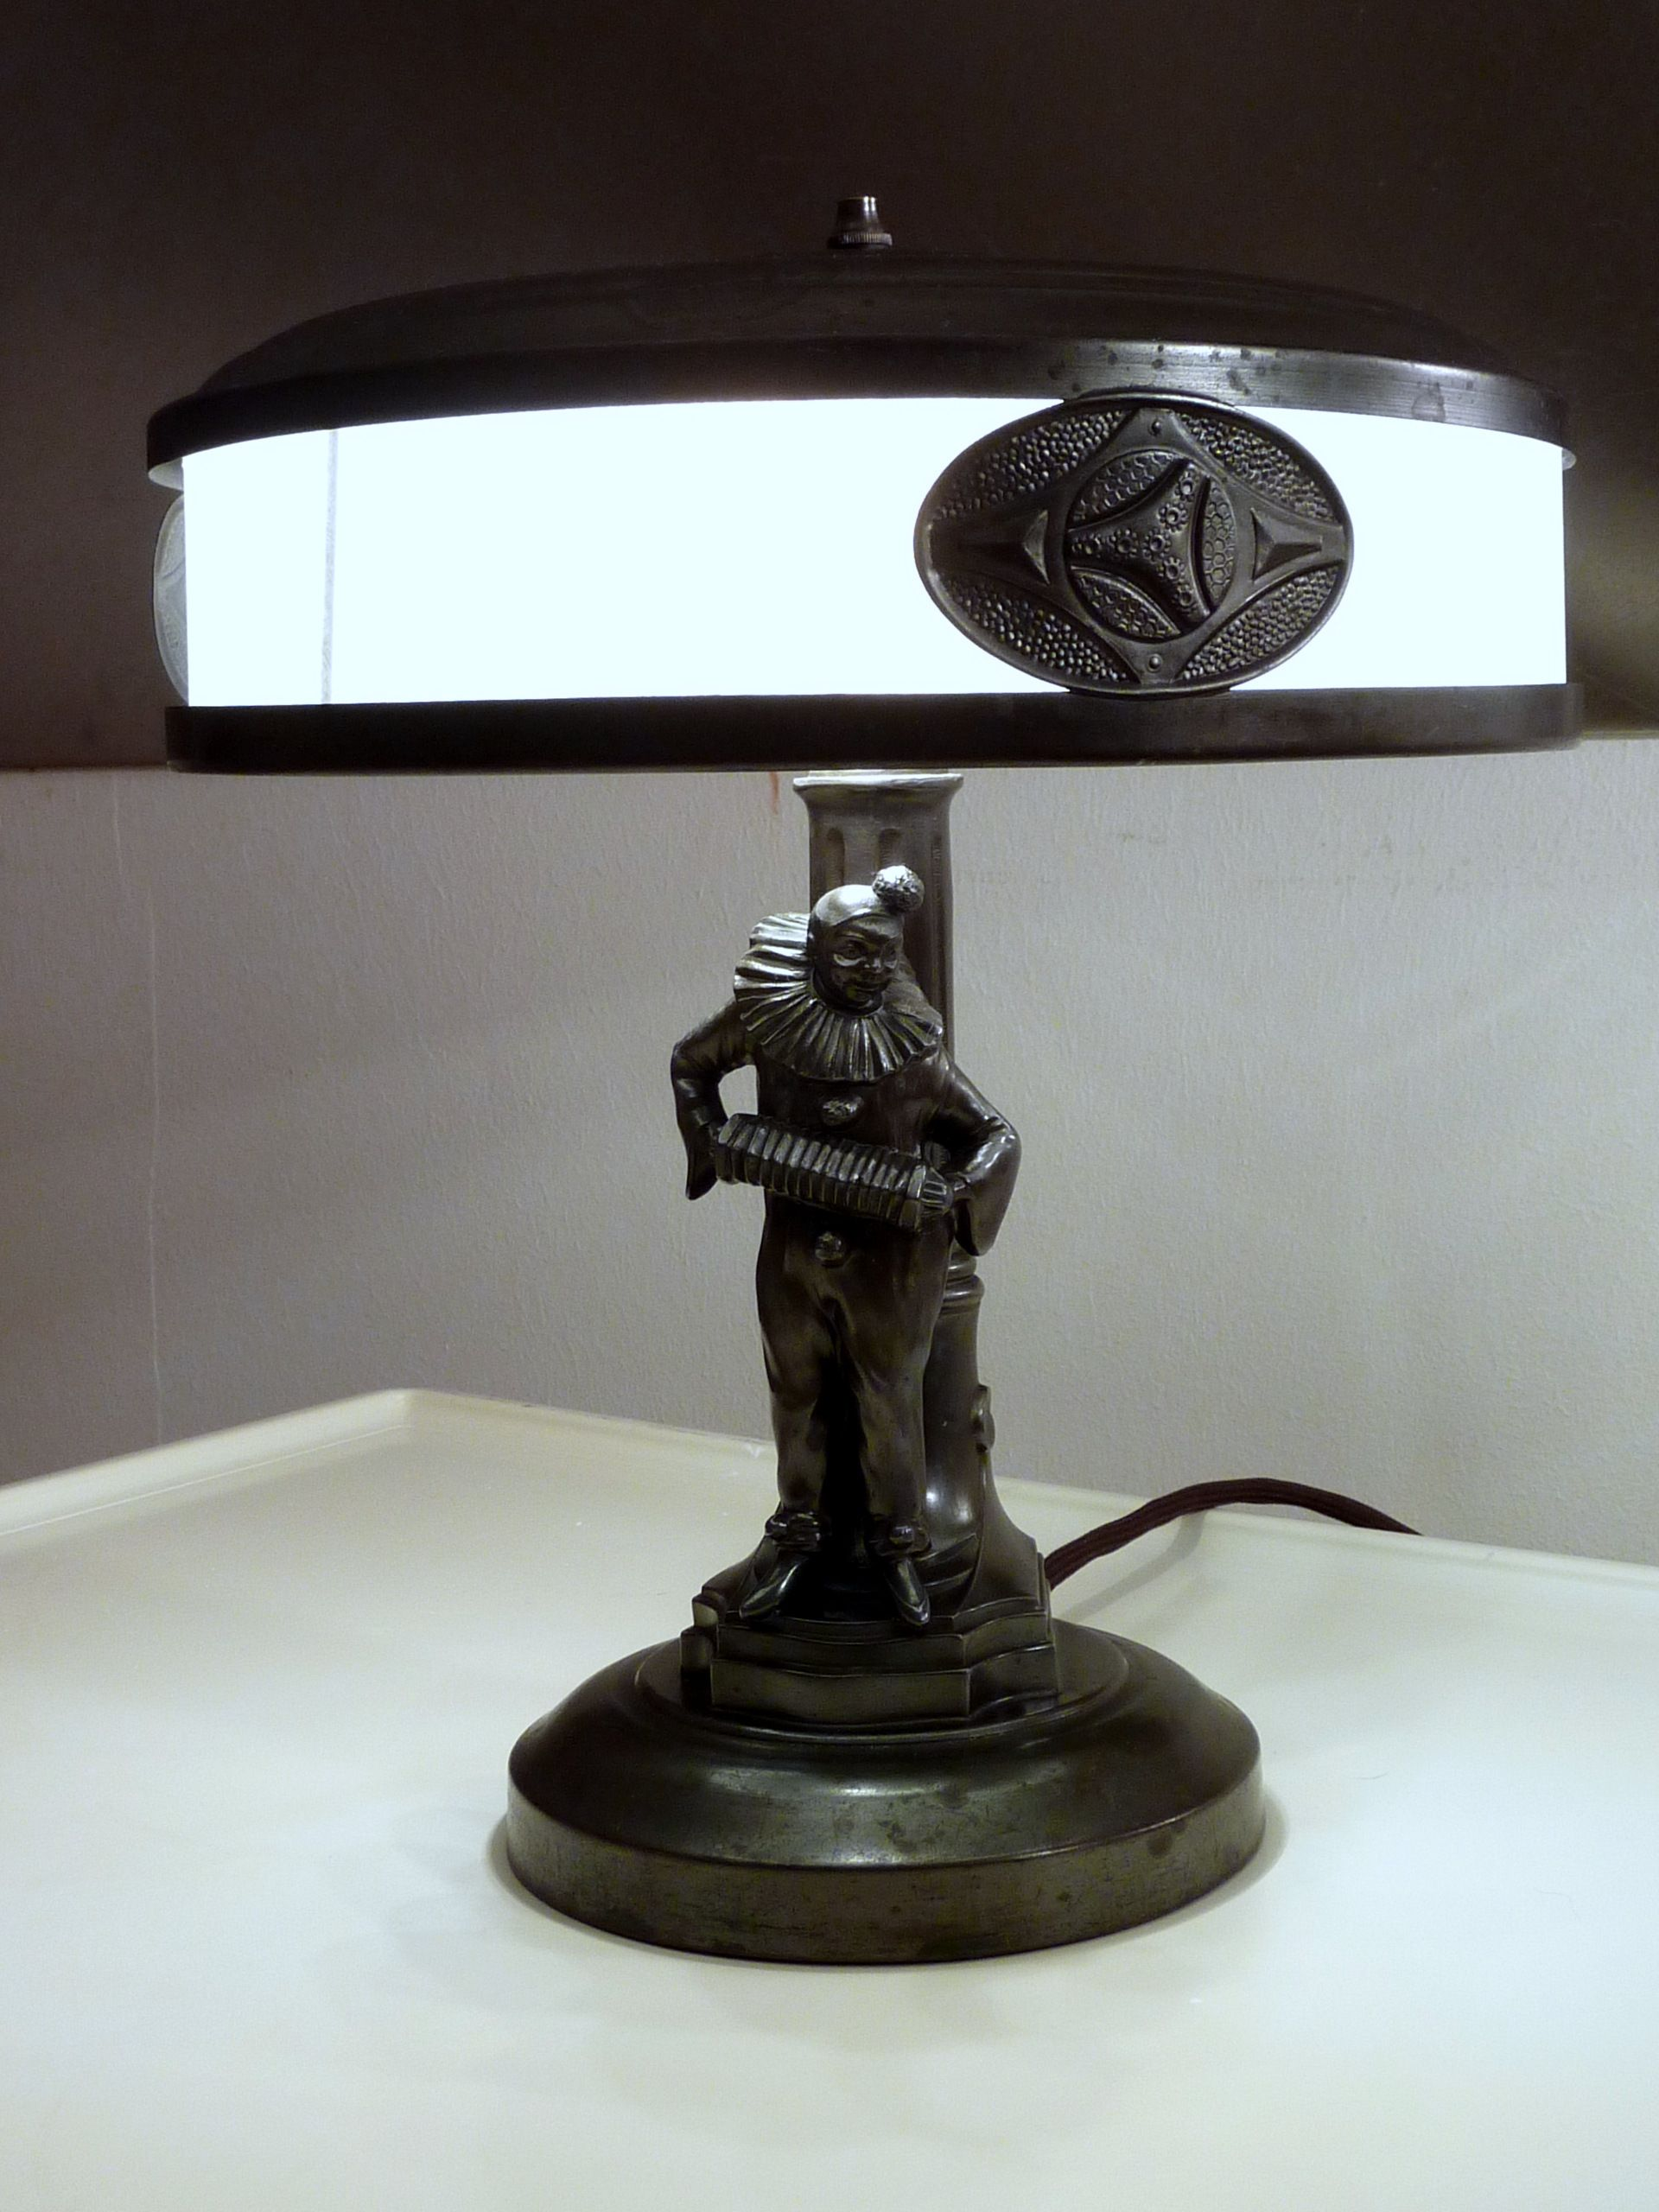 Bodenlampe Innen Original Desk Lamp With Harlequin Figure From The 20s 30s